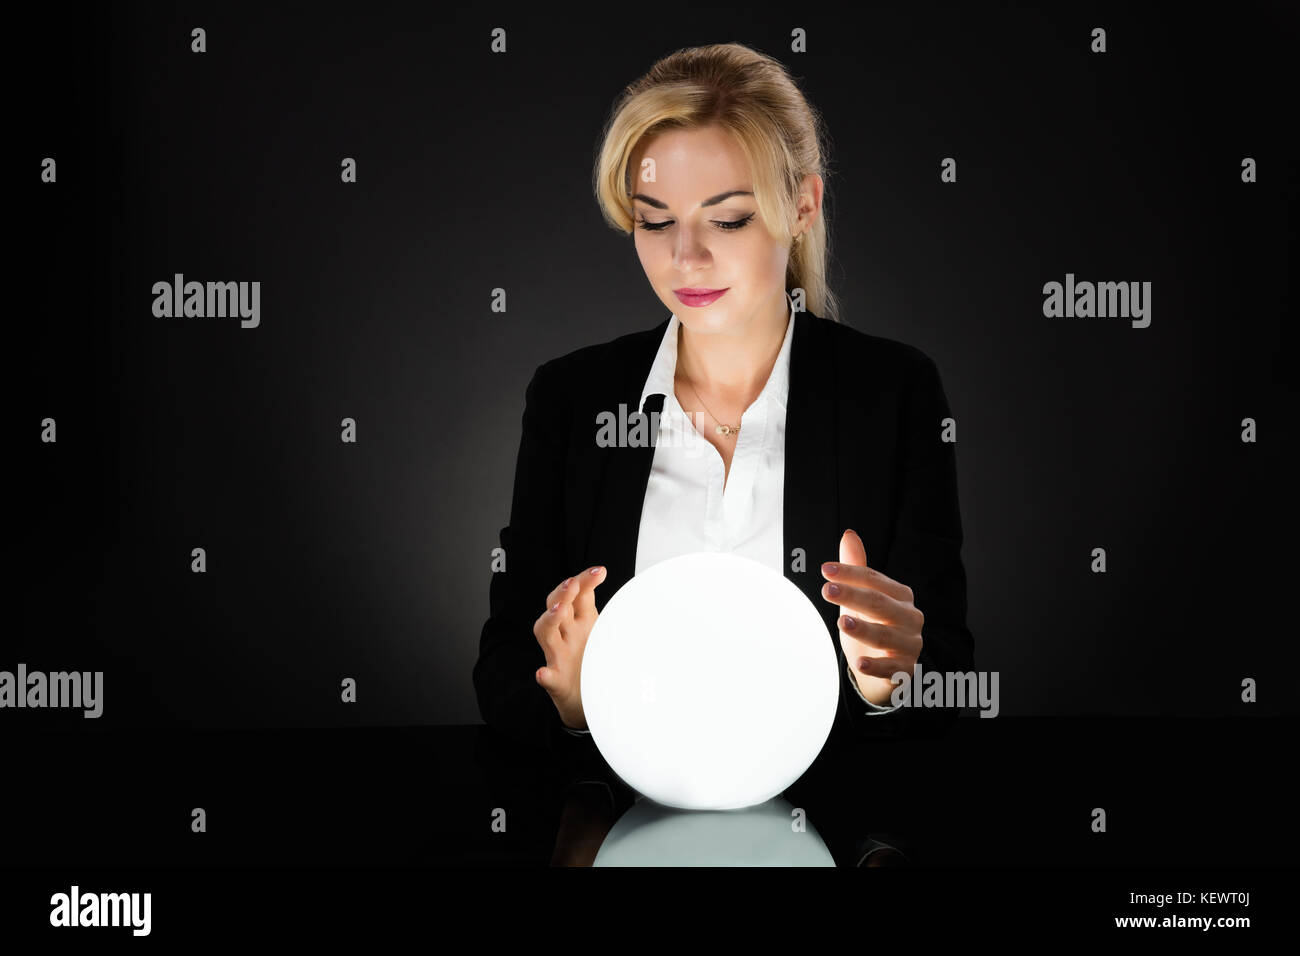 Businesswoman Looking Into The Future In A Crystal Ball On Black Background. Fortune Teller Predicting Future - Stock Image